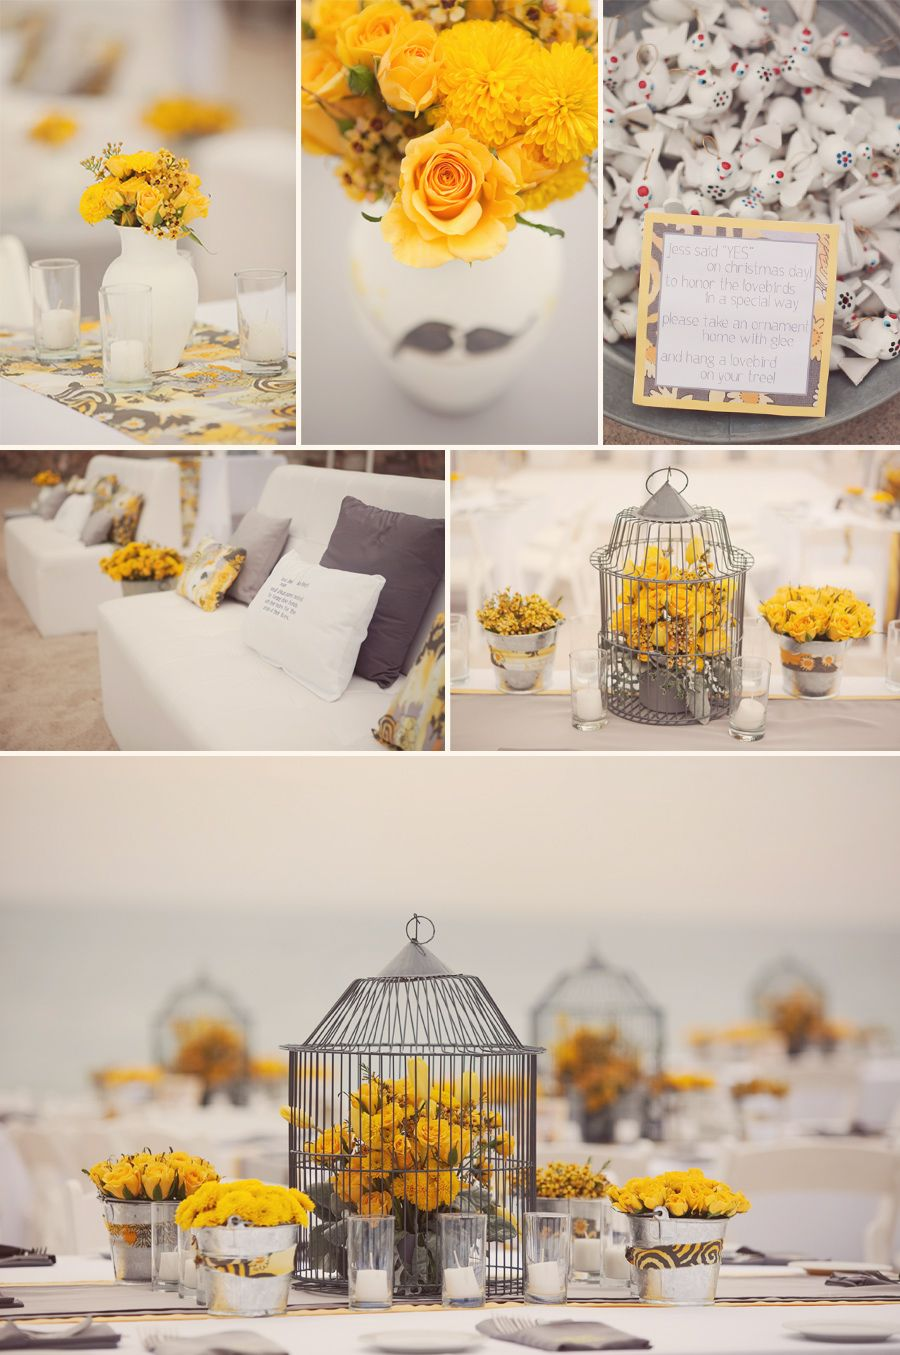 Gorgeous bright yellow table centres  Photography by Stephanie